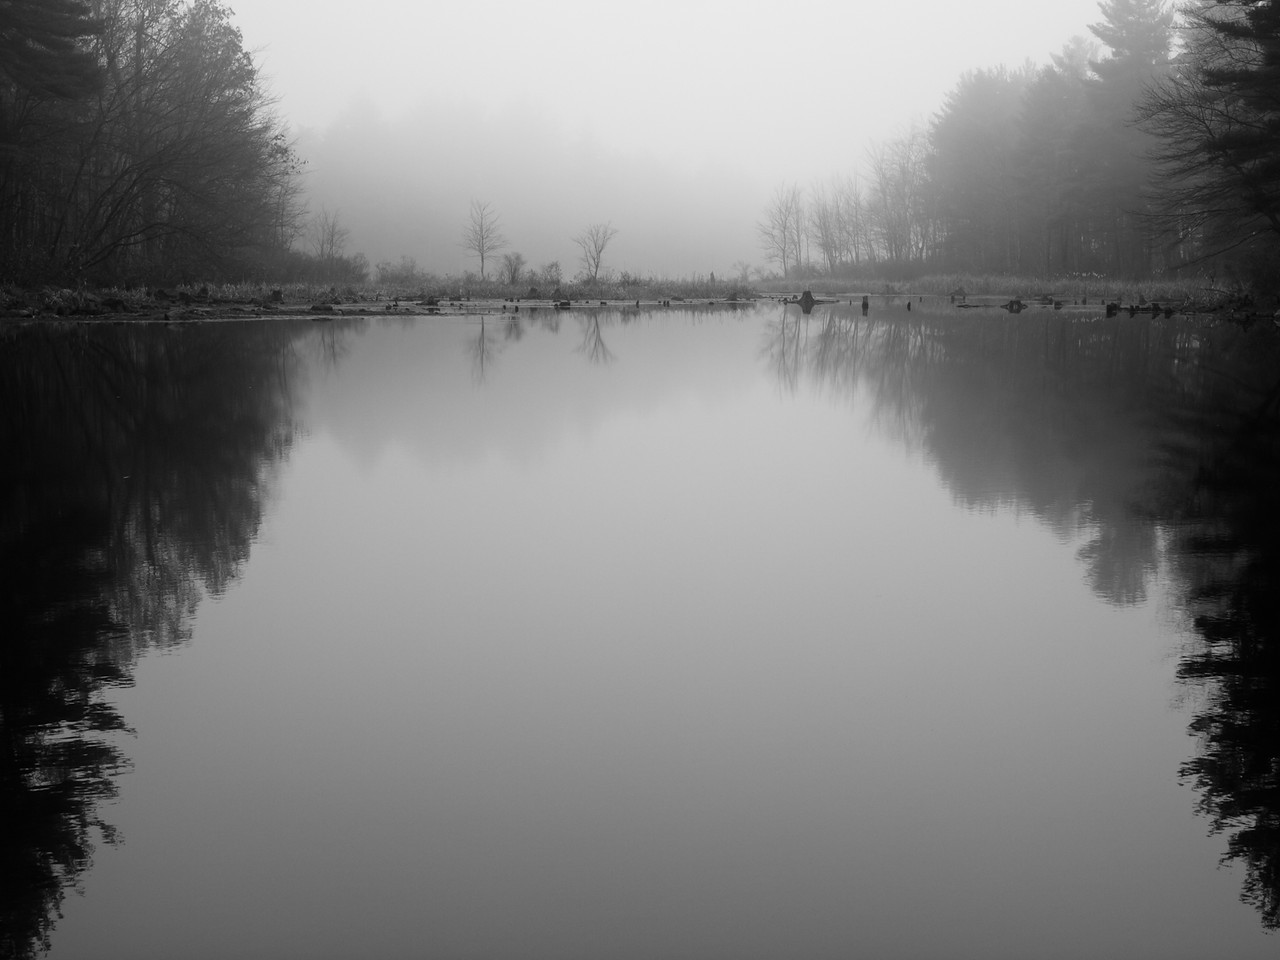 What a difference a month makes - this is Adams pond again on a perfect foggy morning.  I love how only the closest trees are visible.  When I came back from walking around the woods, the fog had thinned and the effect was much less dramatic.